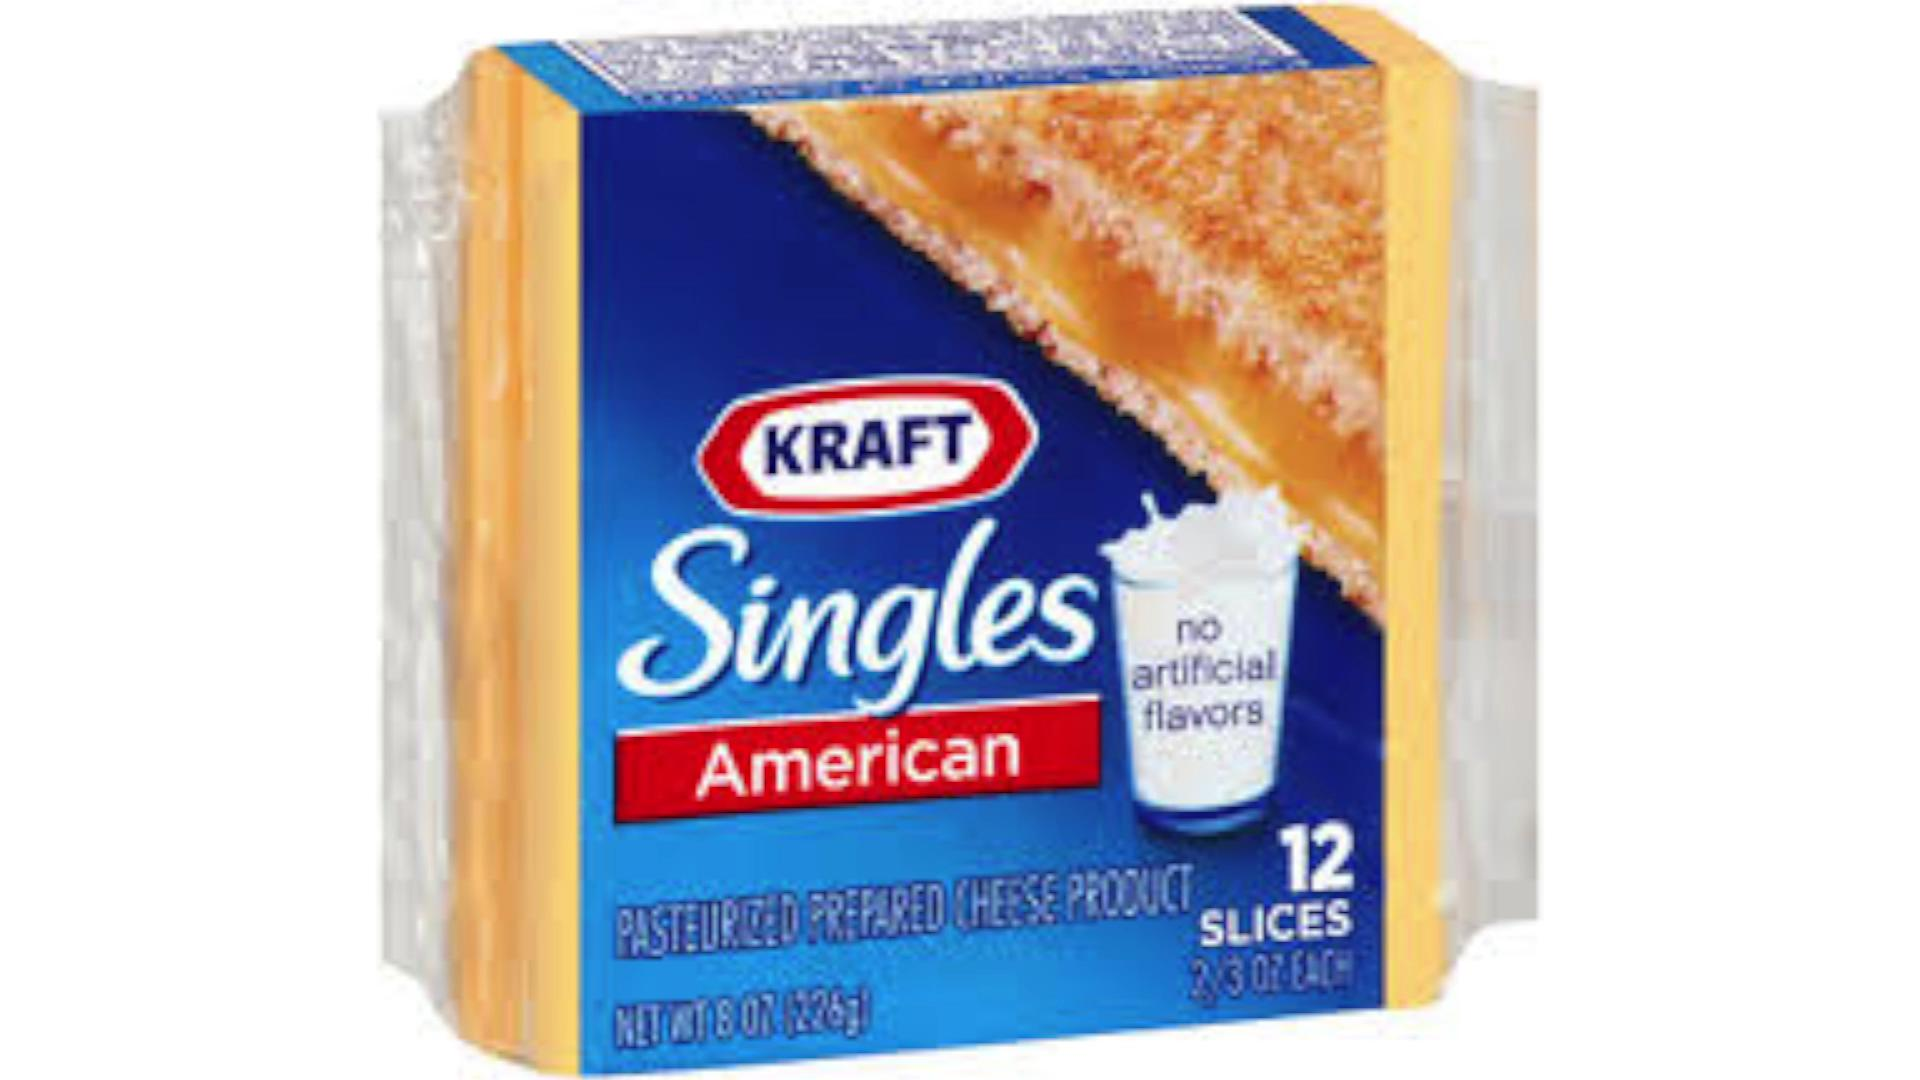 People eating Kraft singles wrappers force recall